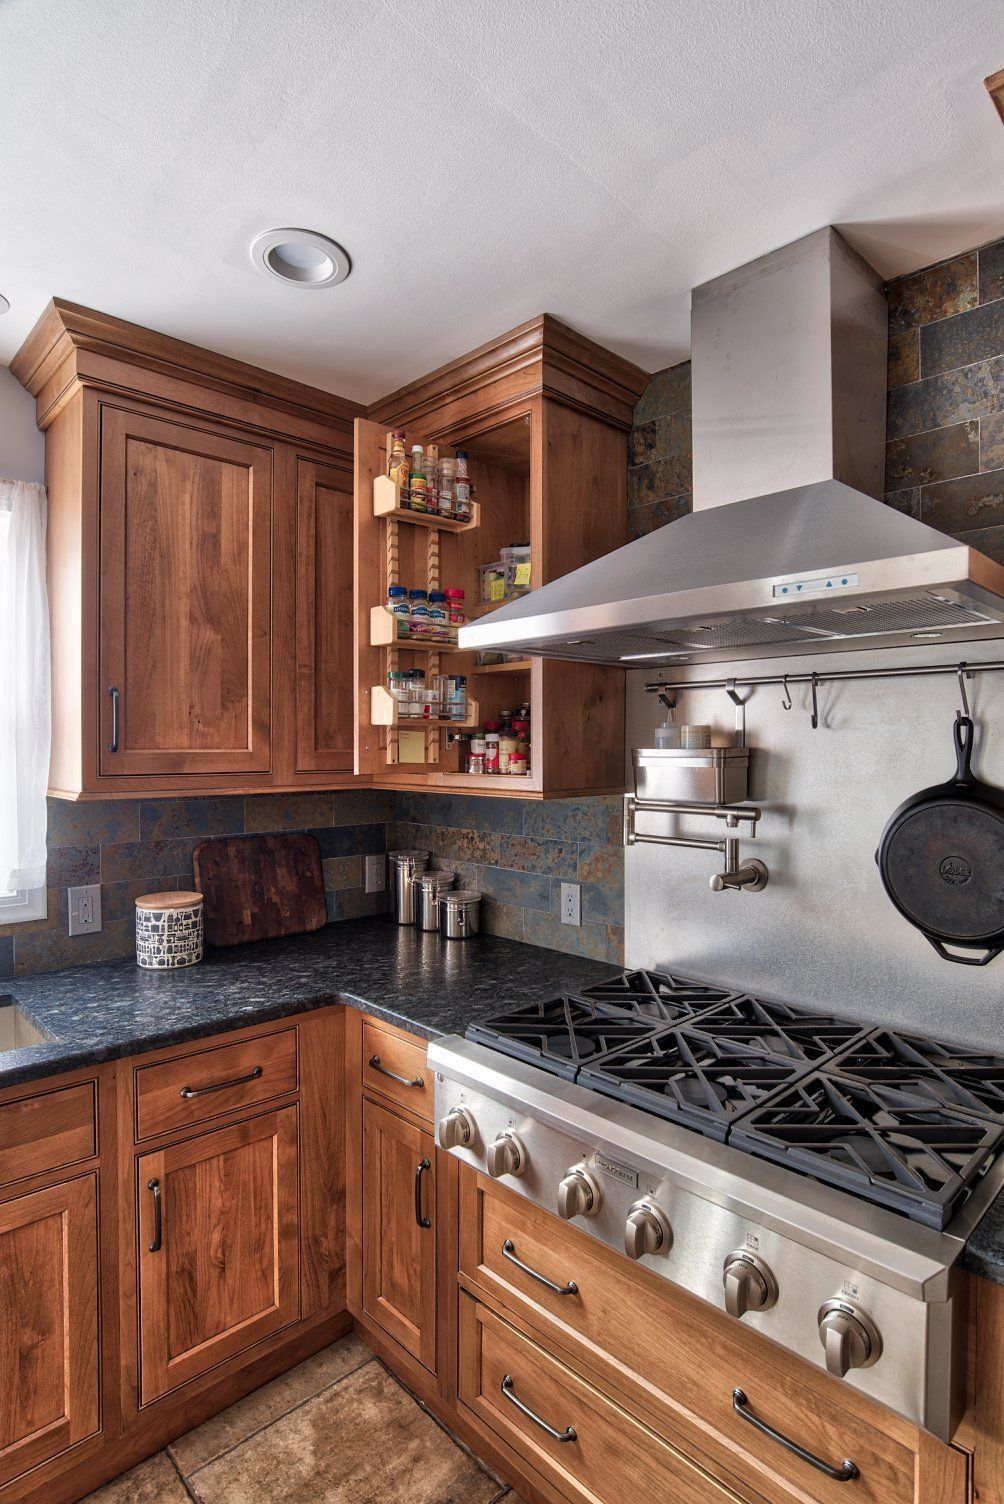 Alder Inset Cabinetry by Starmark (With images) | Kitchen ...